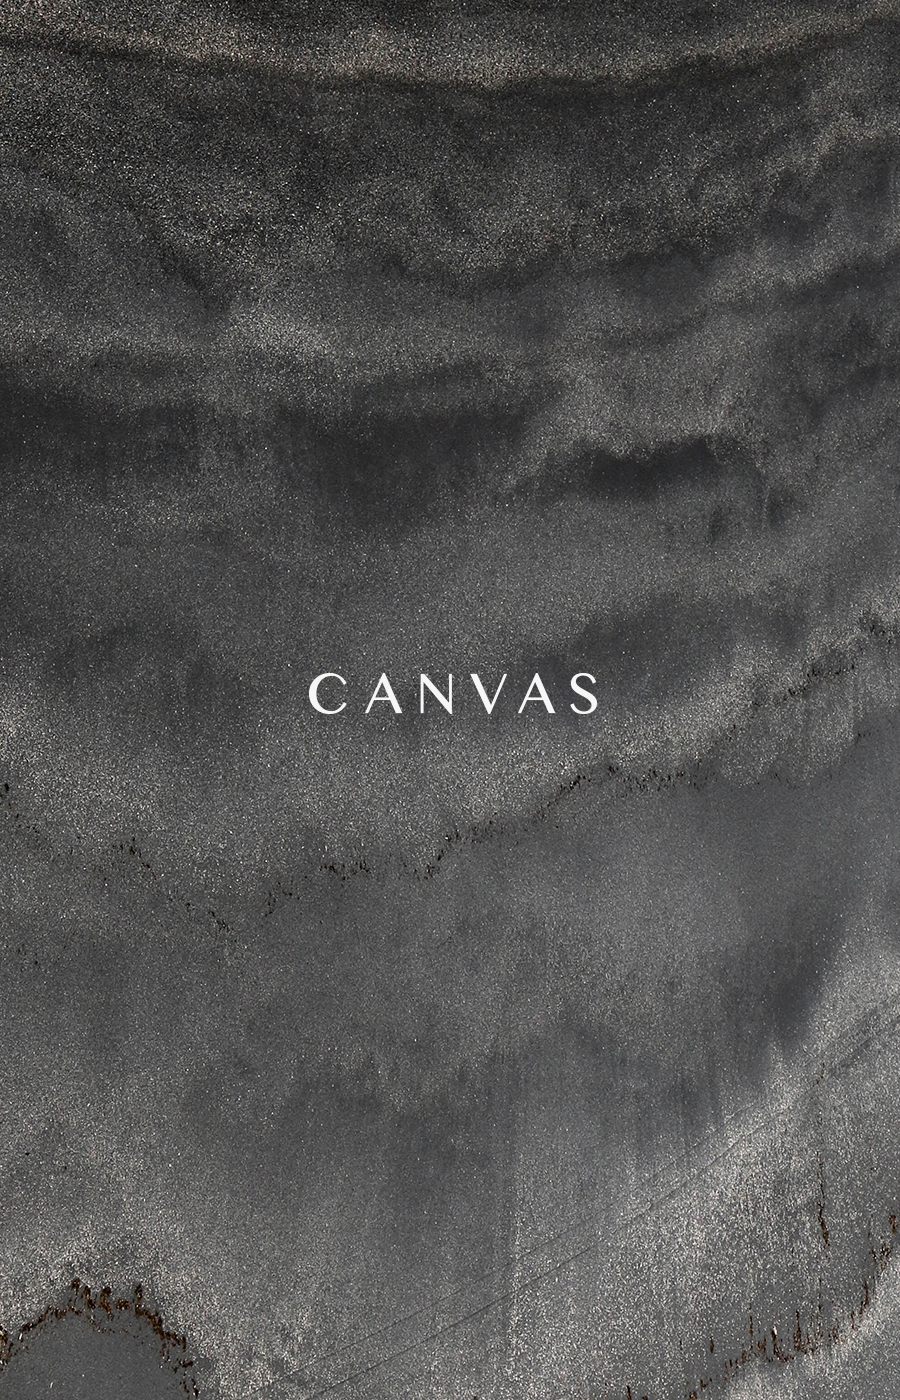 BLACKCANVAS